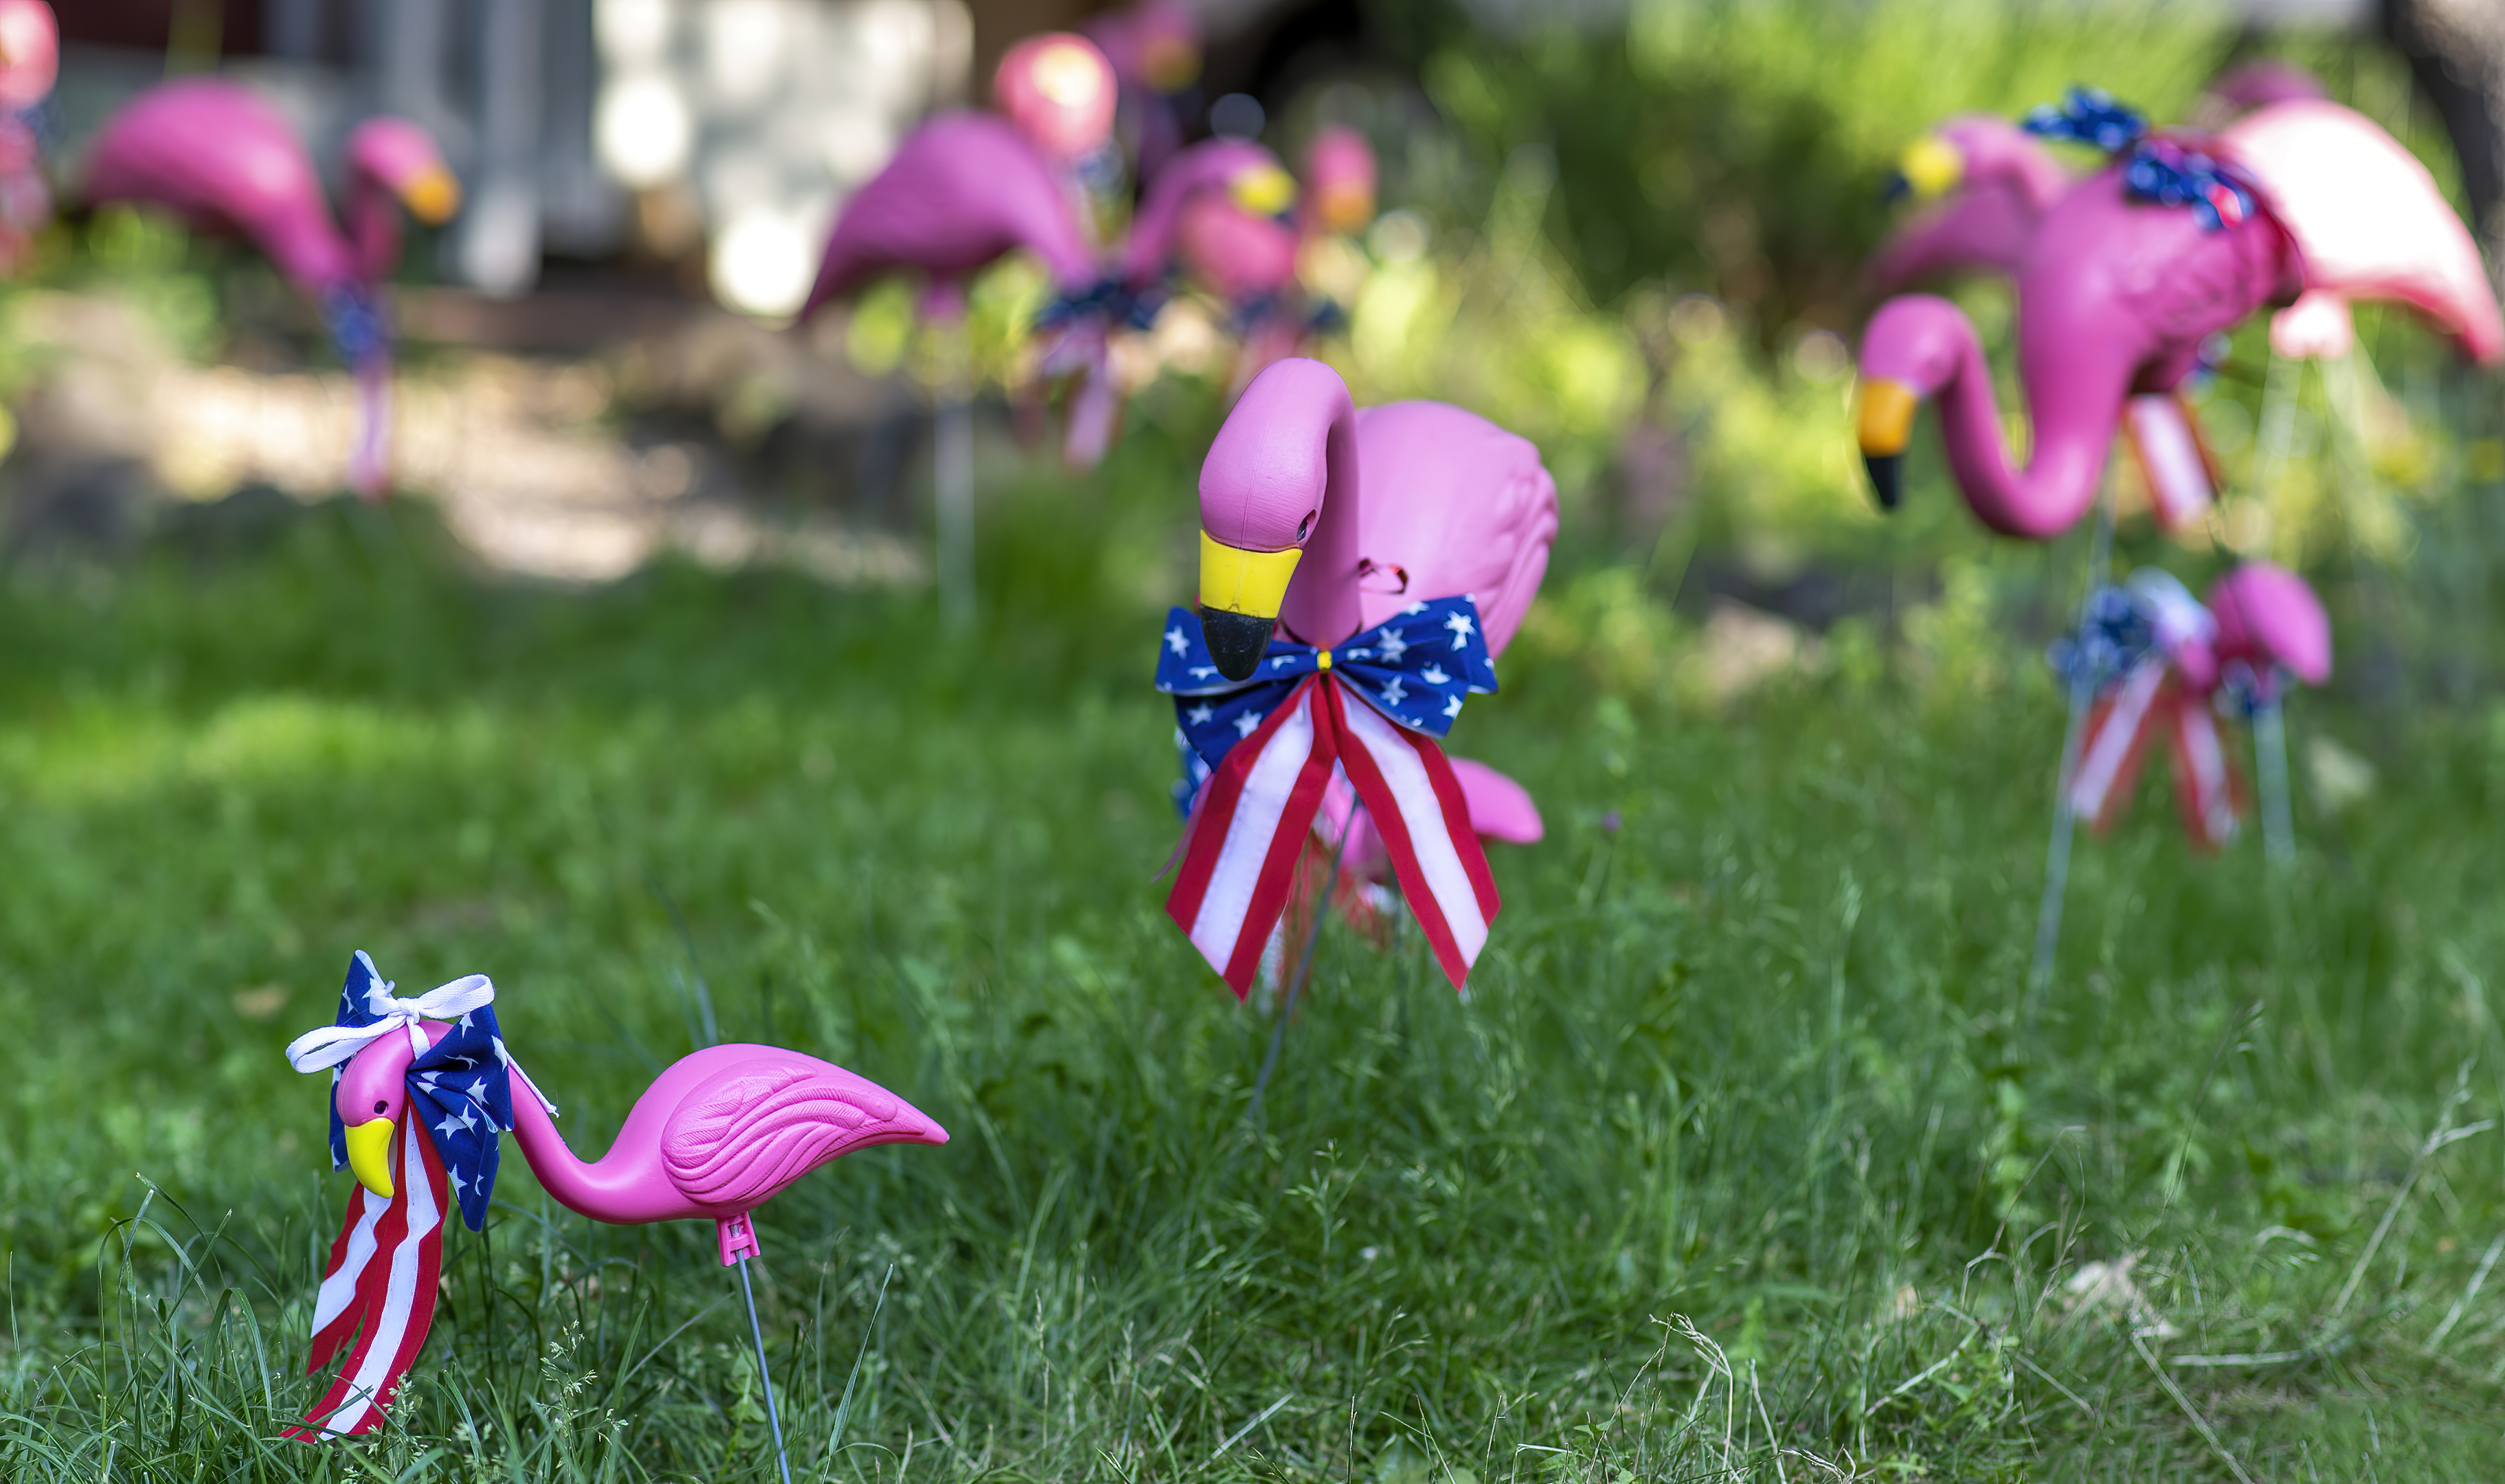 pink flamingos lawn ornaments fourth july 4 topaz denoise ai-denoise